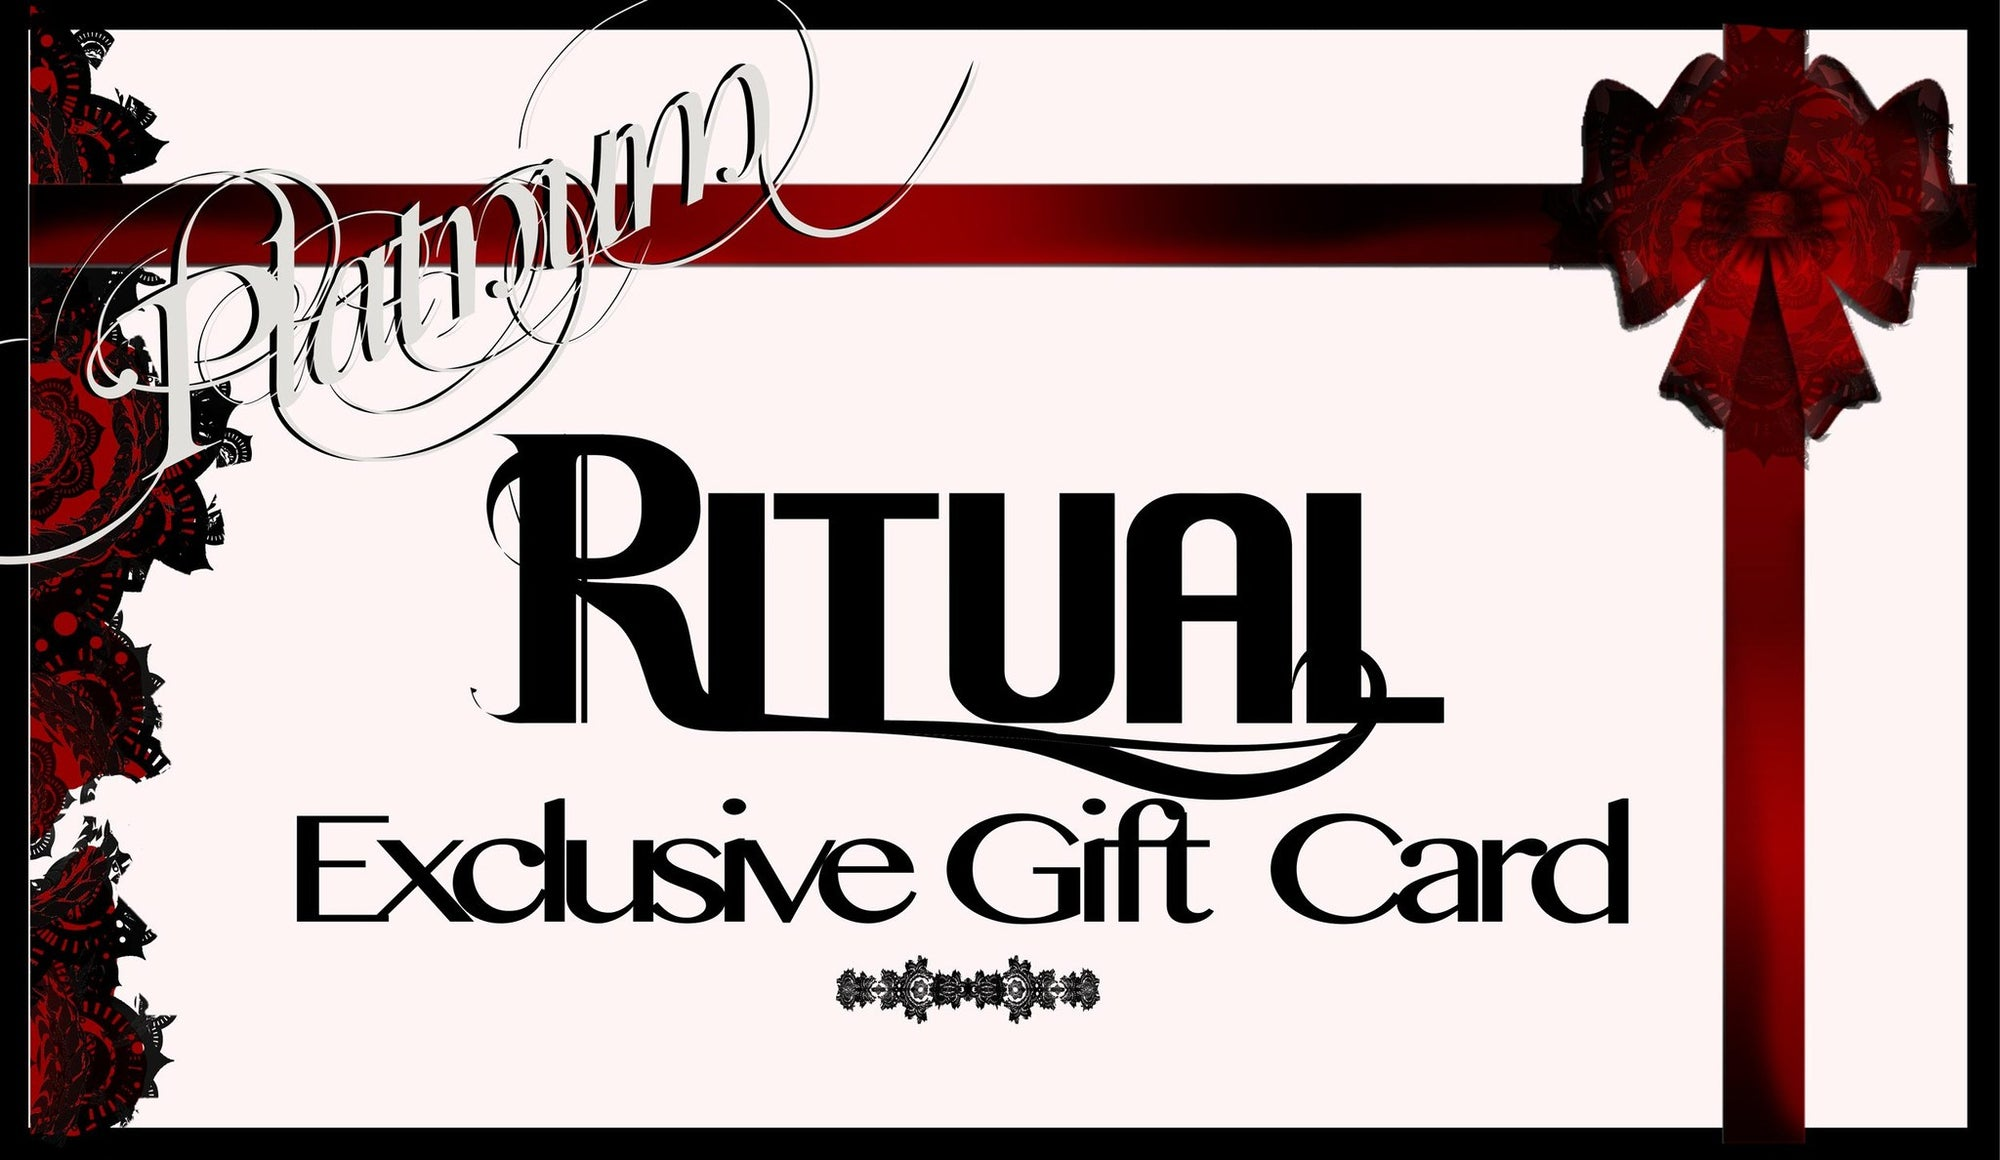 Gift Card - Platinum Gift Card